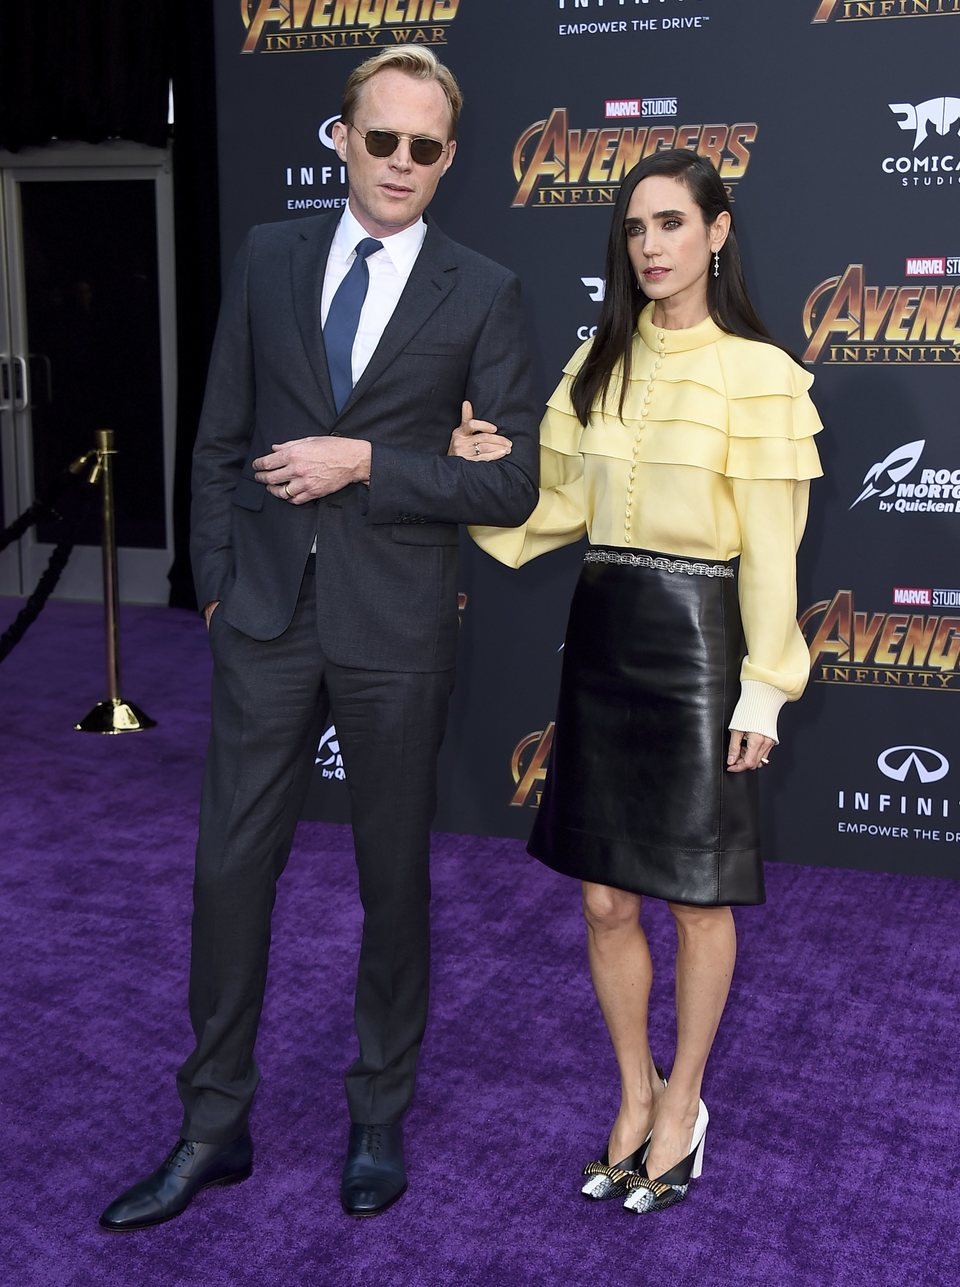 Paul Bettany & Jennifer Connelly pose on the purple carpet at the world premiere of 'Avengers: Infinity War'